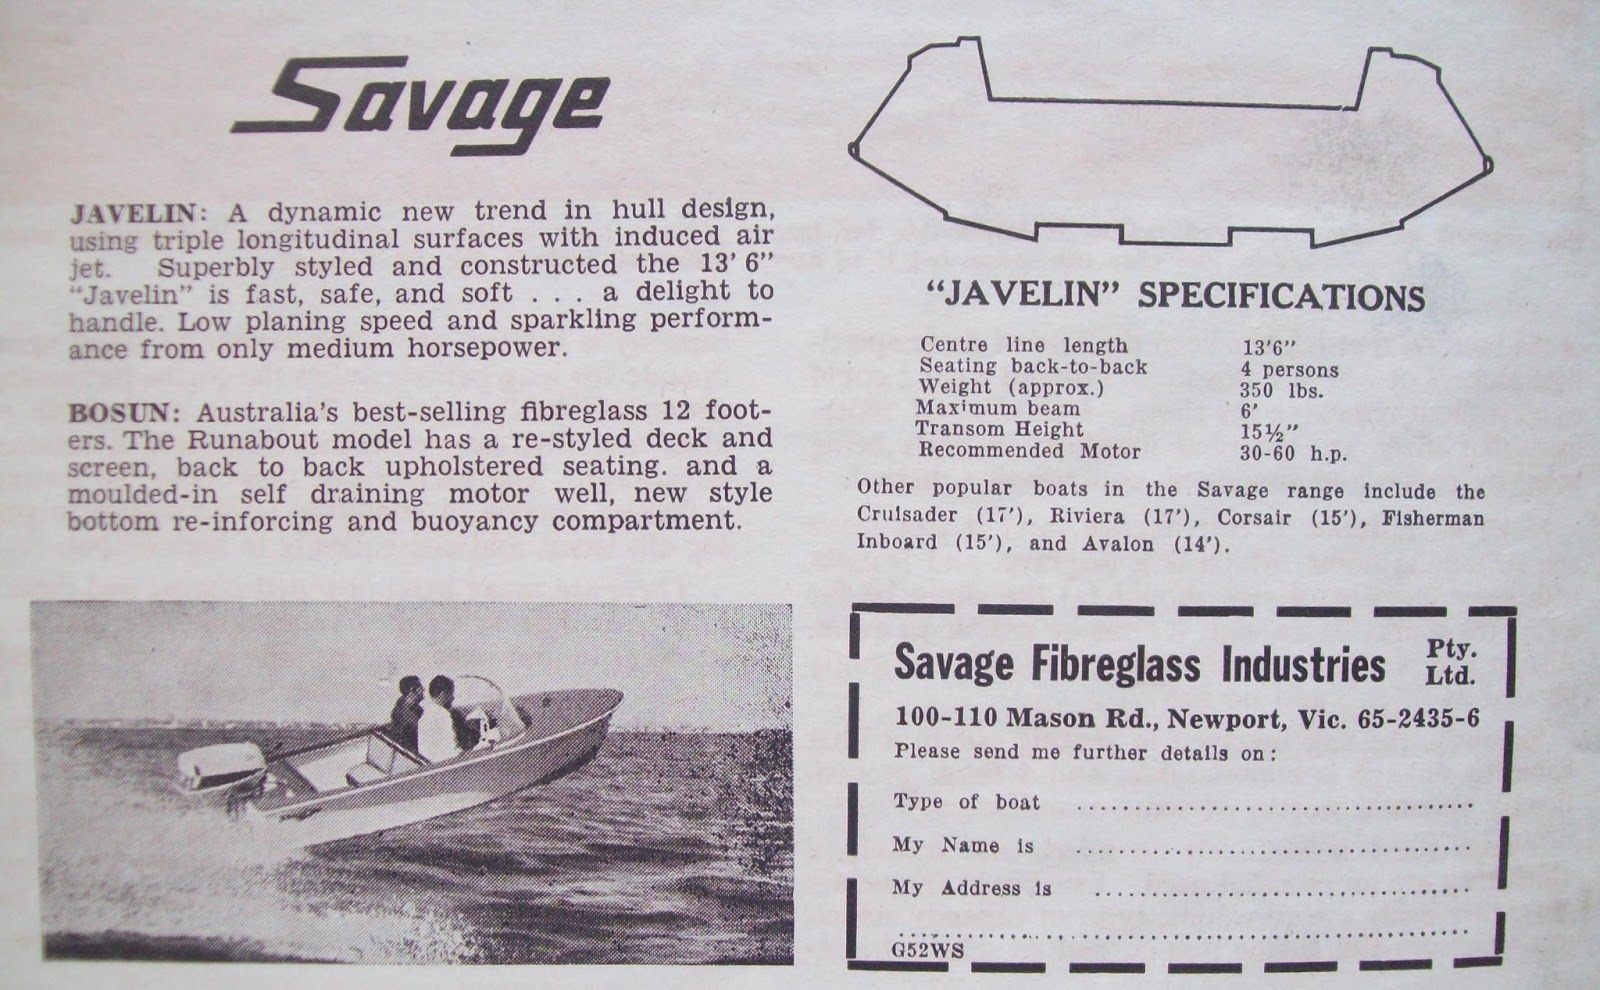 Snap Old Fashioned Tahiti Jet Boat Wiring Diagram Ensign Electrical Kenner Luxury Image Collection Ideas Blogitiacom